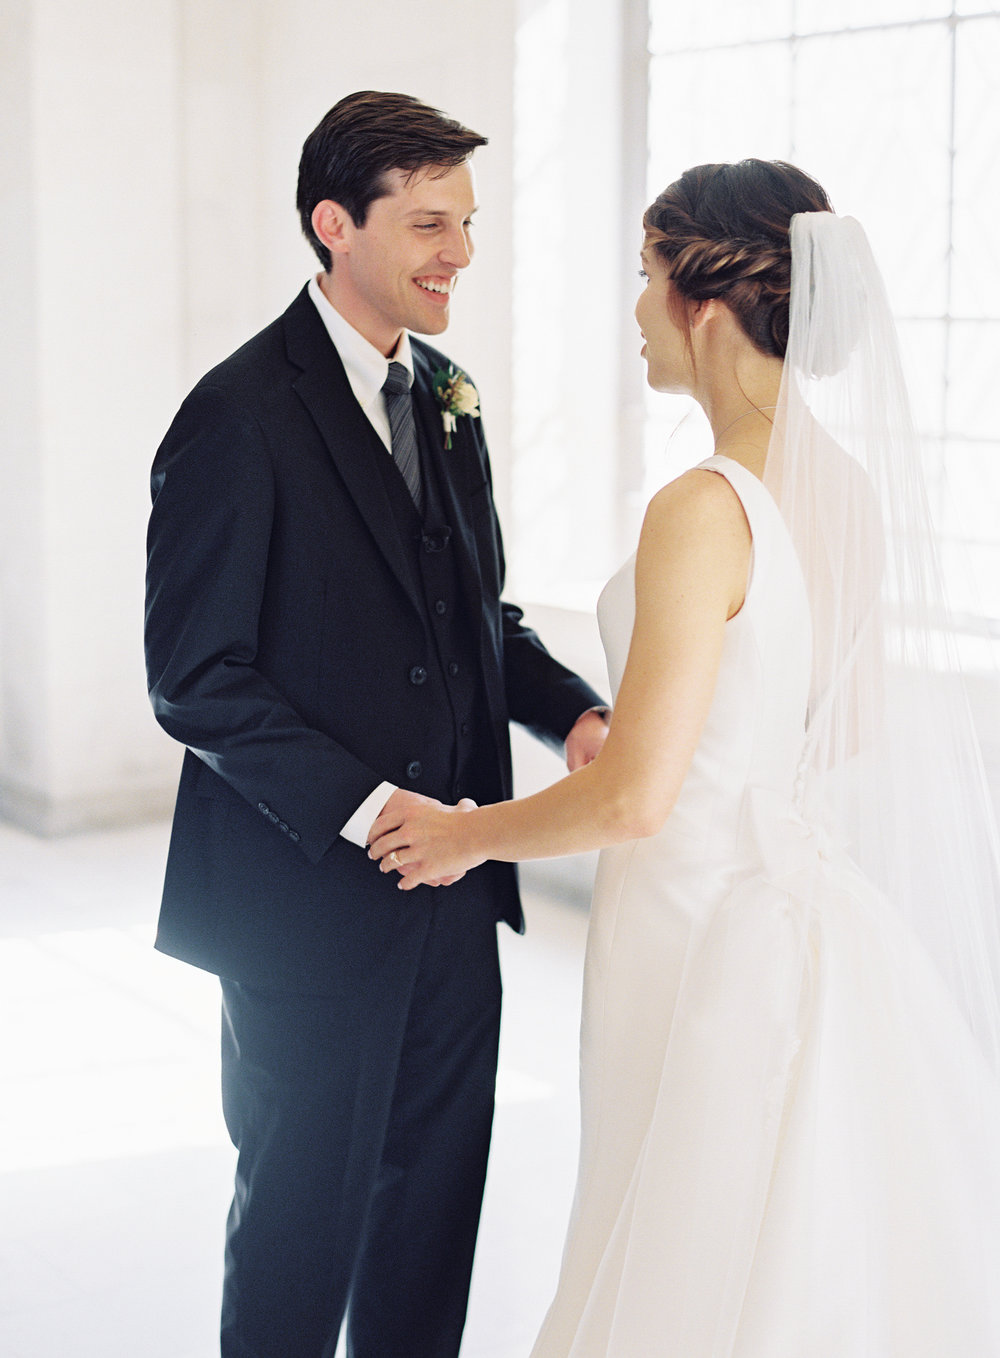 Meghan Mehan Photography - California Wedding Photographer | San Francisco City Hall Wedding 012.jpg